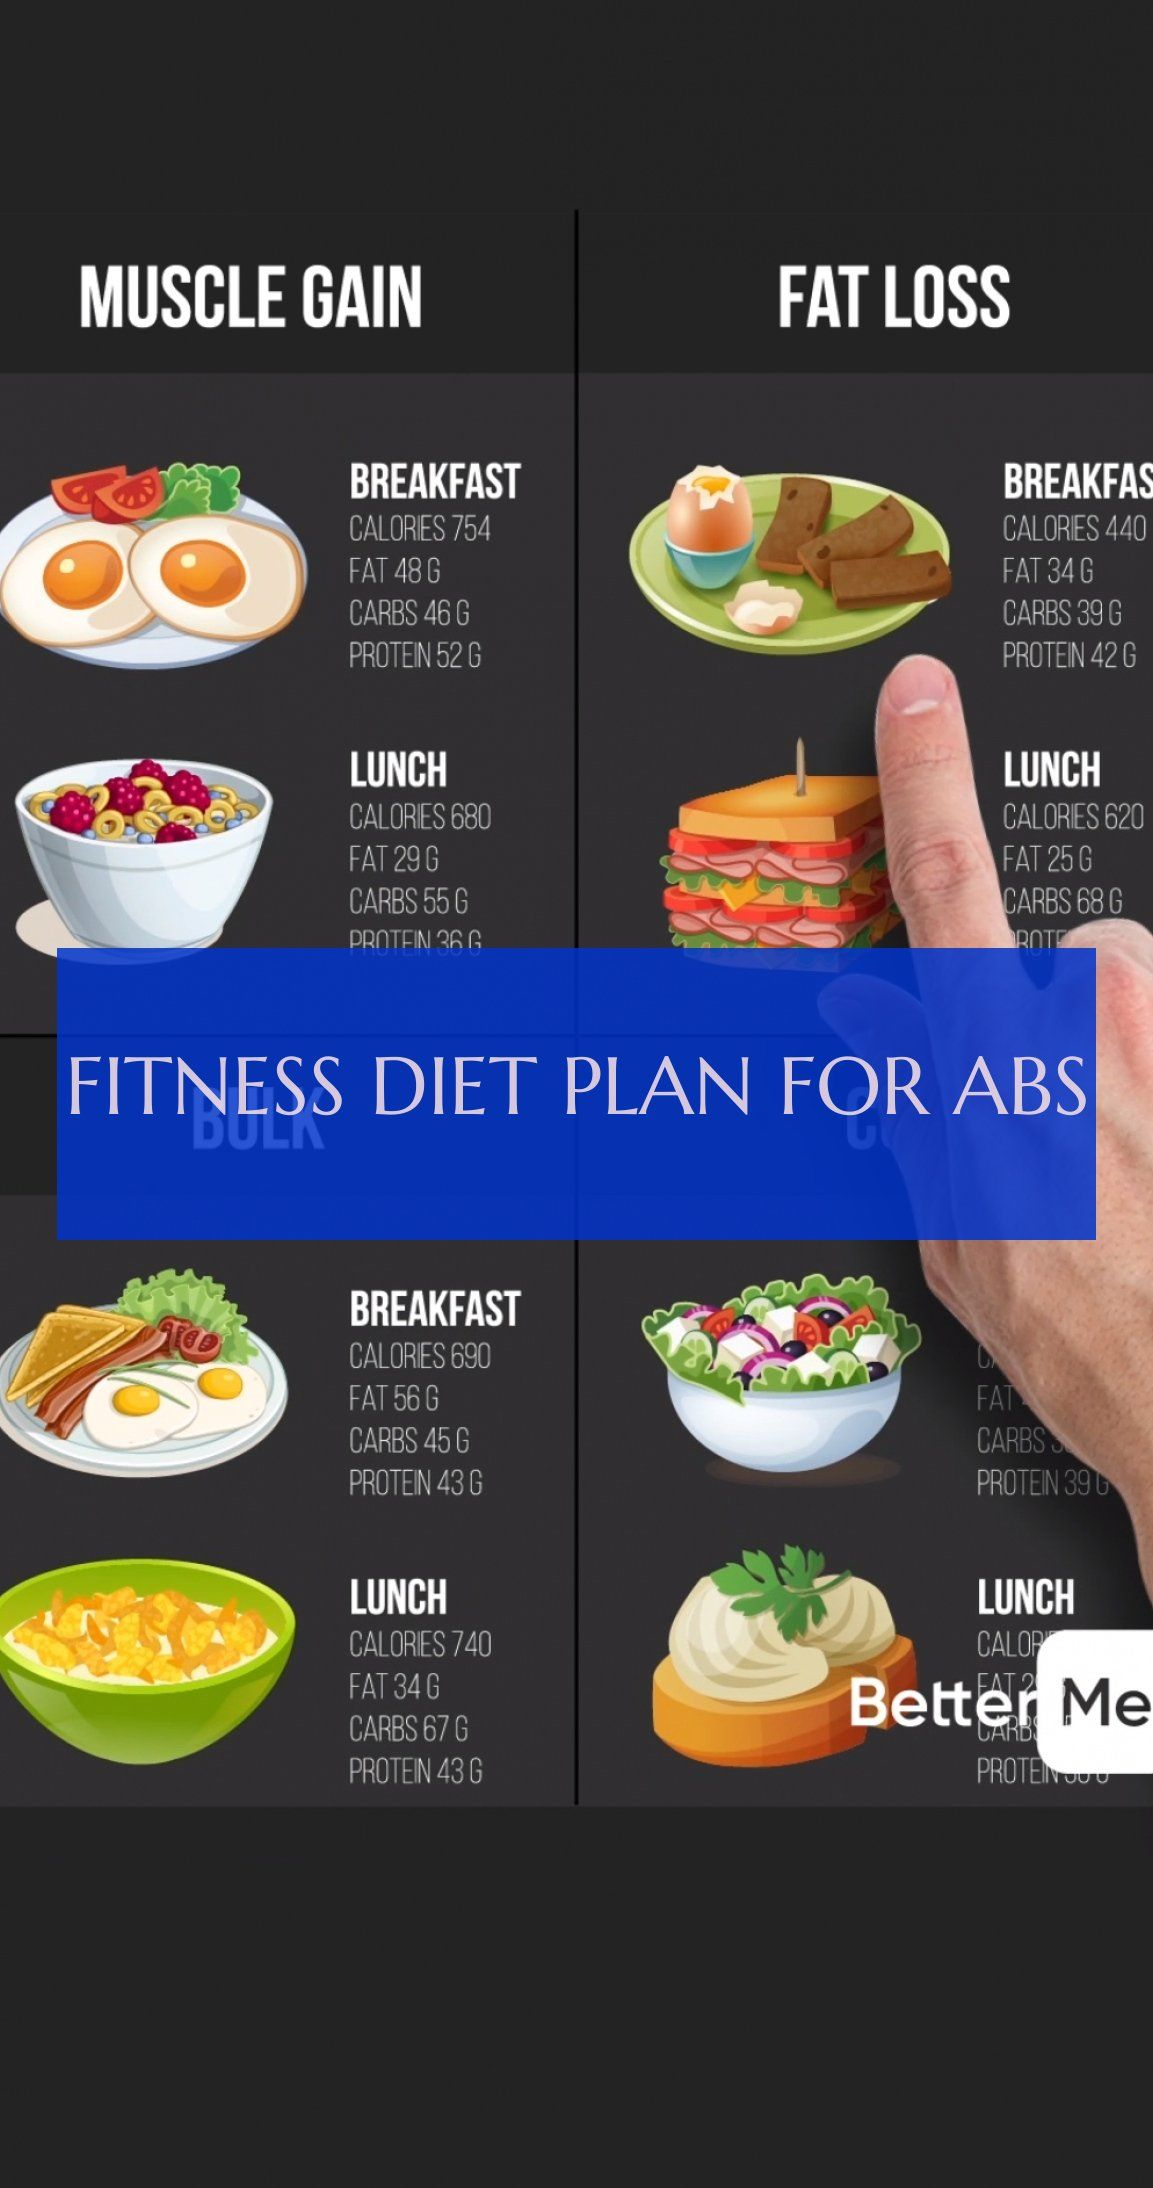 fitness diet plan for abs #fitness #diet #plan